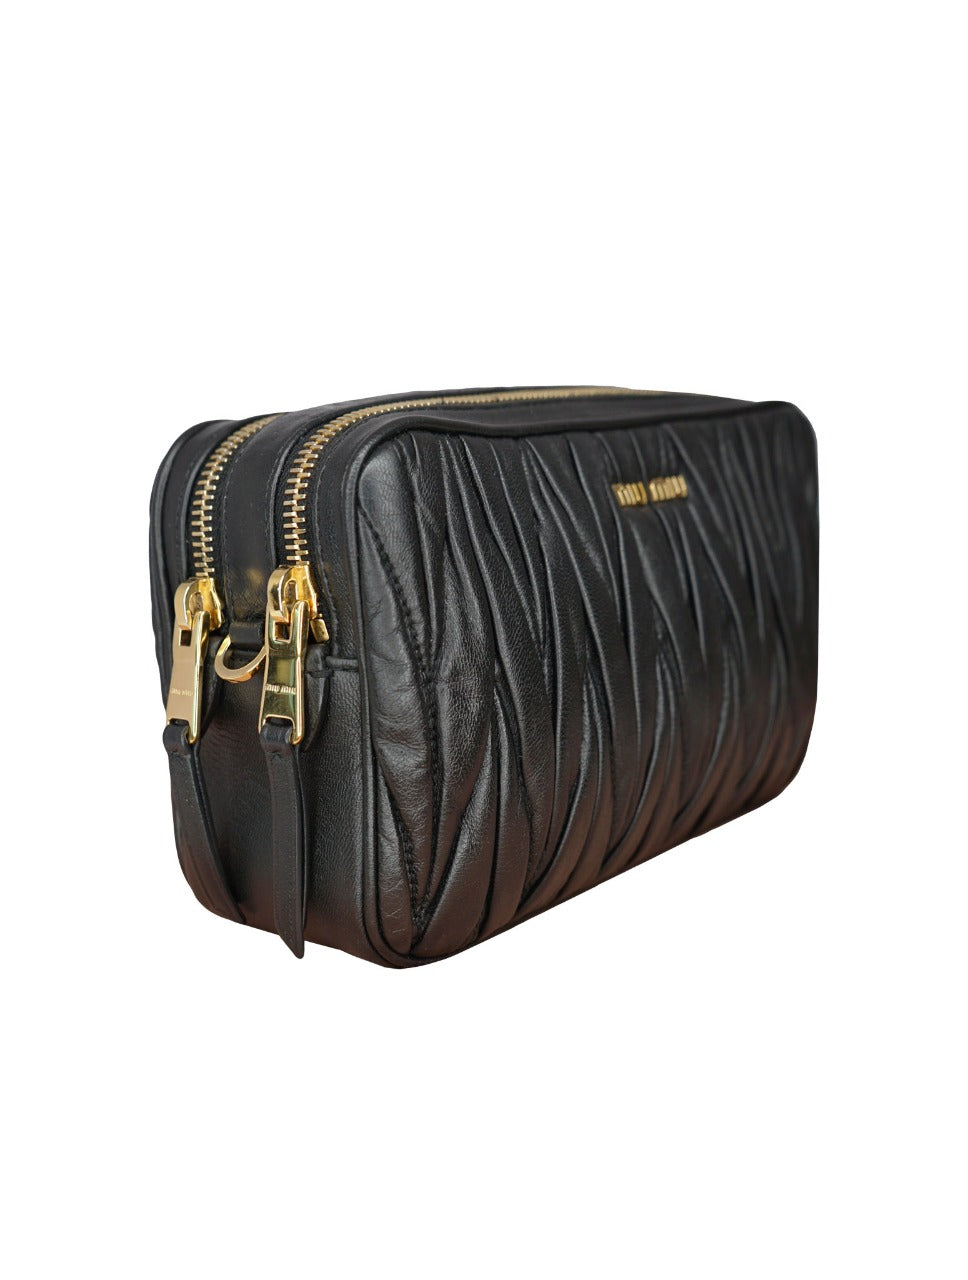 BLACK MATELASSE LEATHER DOUBLE ZIP CAMERA BAG